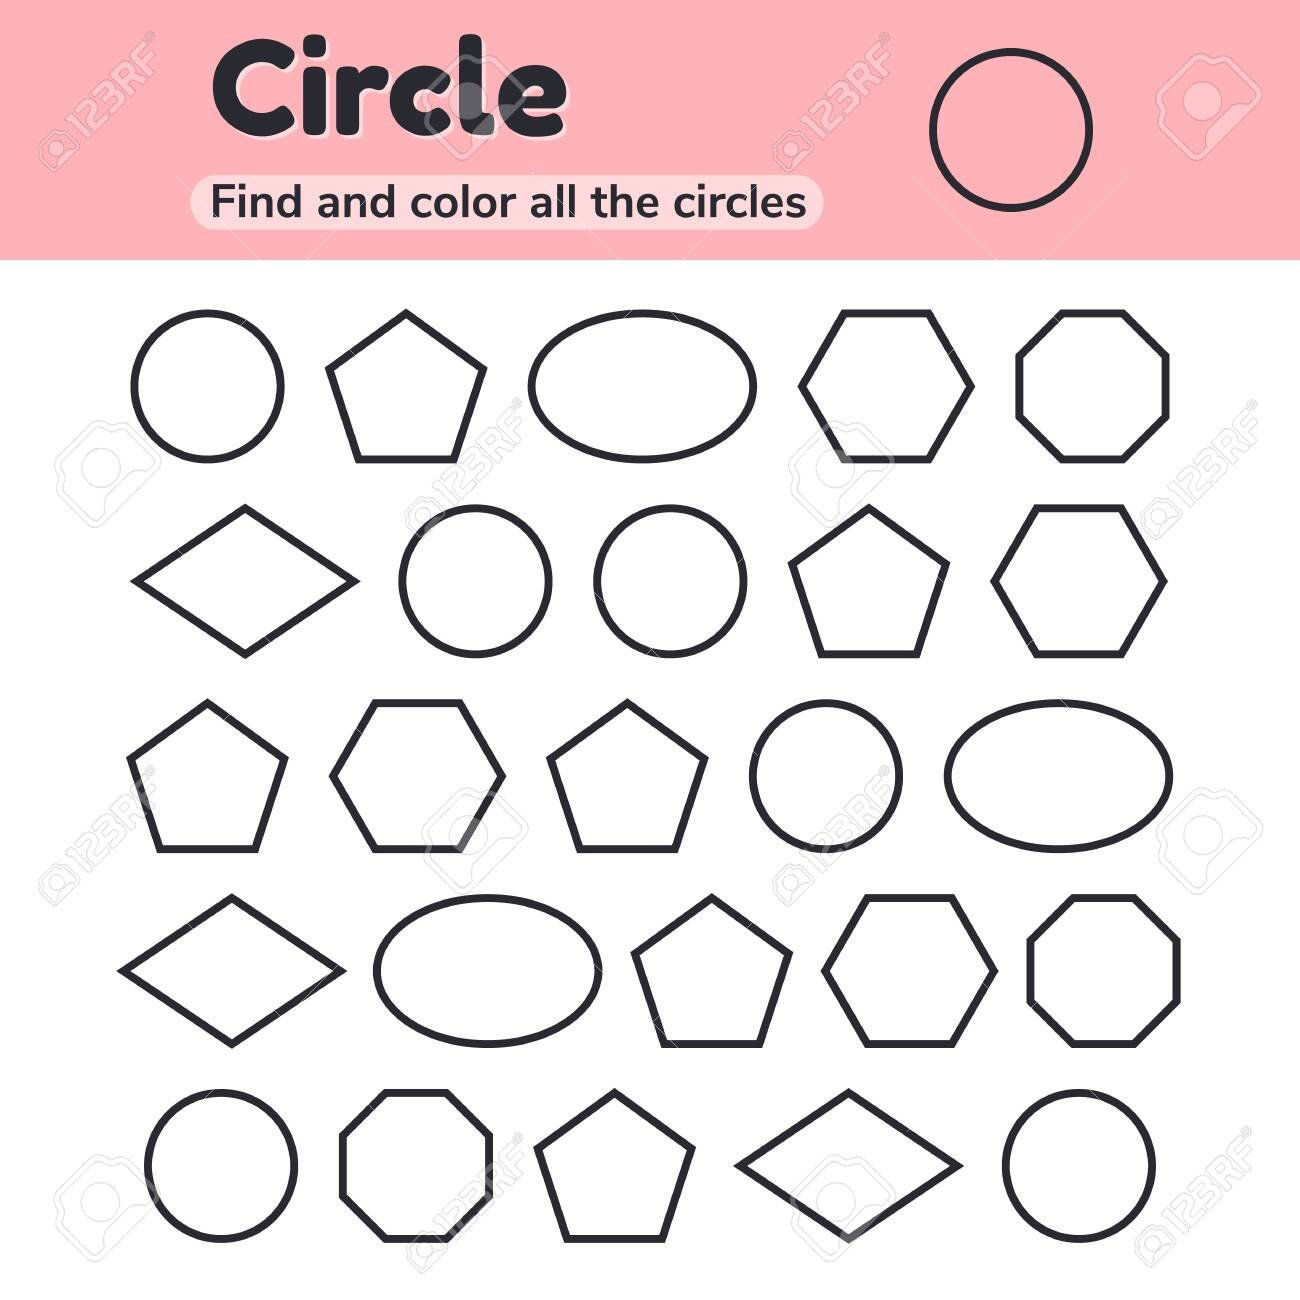 Hexagon Worksheet for Kindergarten Vector Illustration Educational Worksheet for Kids Kindergarten